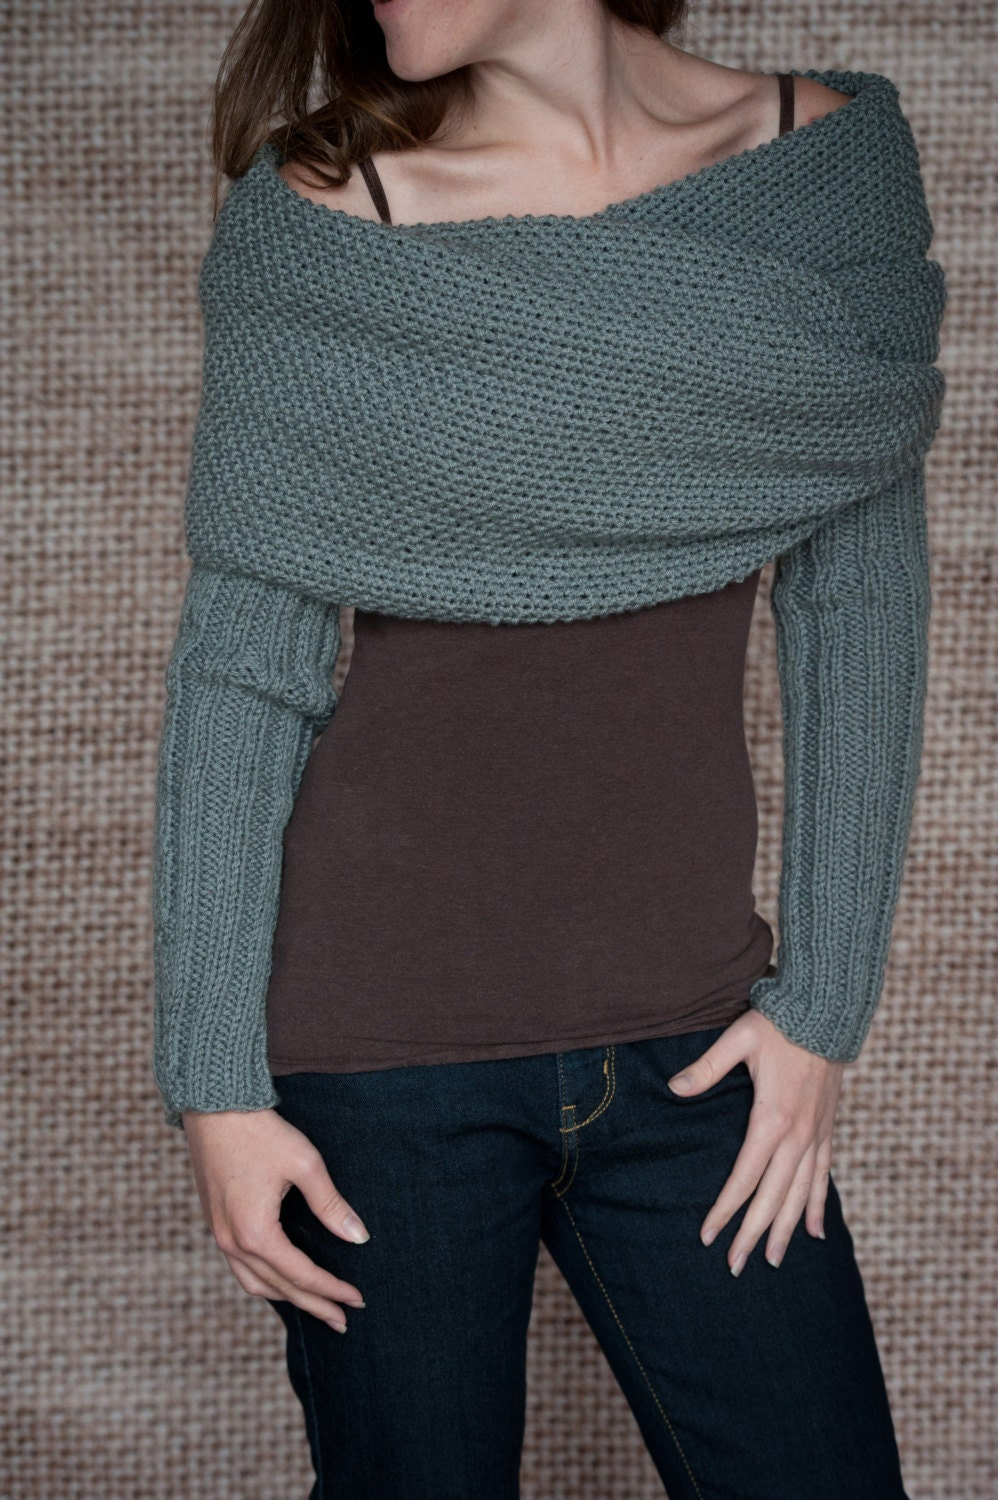 Knitting Pattern For Scarf With Sleeves : Knitting Pattern Sleeve Scarf Sweater Wrap Instand